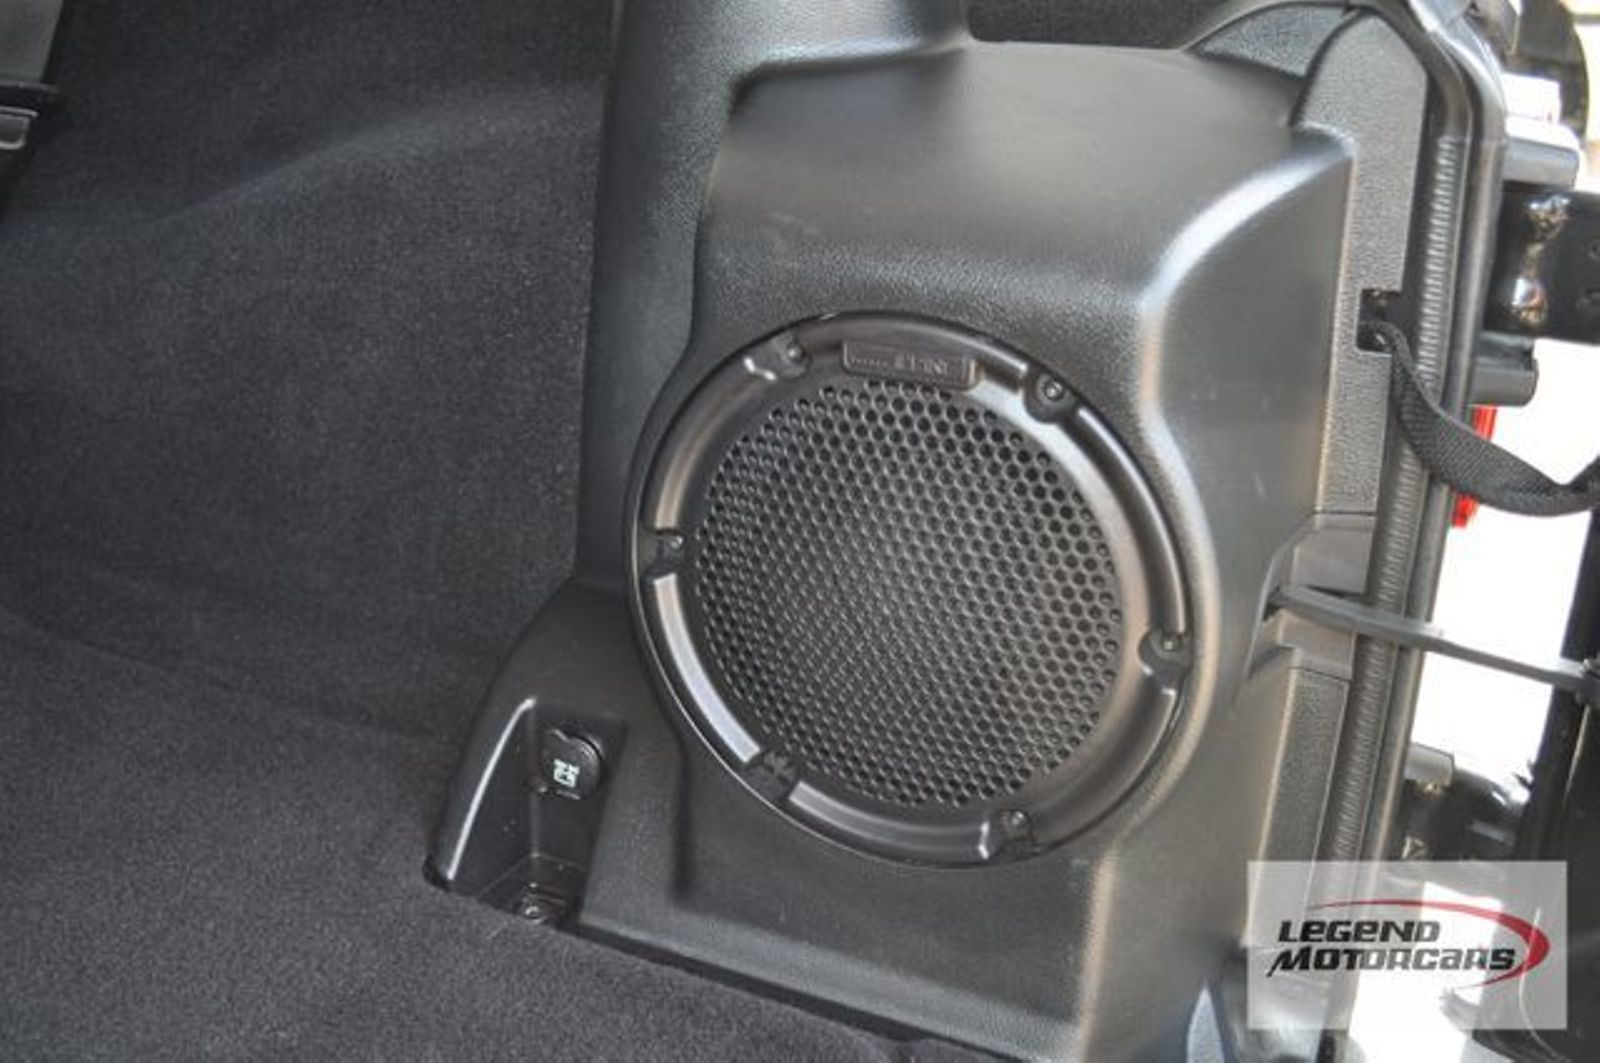 2014 Jeep Wrangler Unlimited Rubicon City Tx Legend Motorcars Of Jk Subwoofer Box Carrollton In